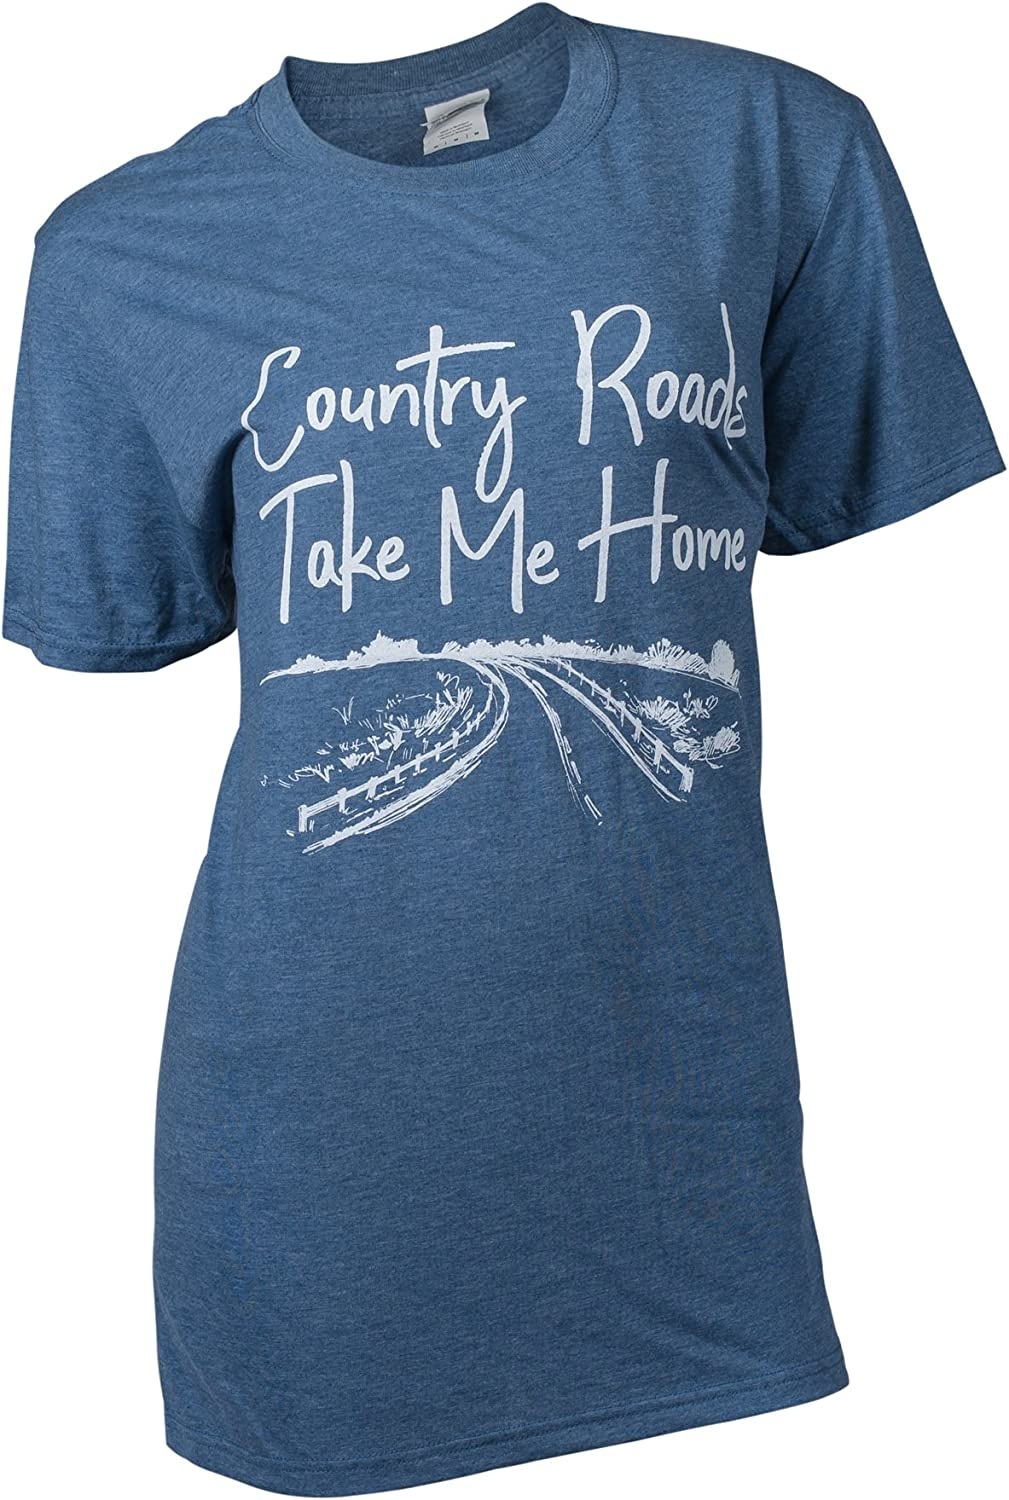 Southern Couture SC Soft Country Roads Take Me Home Front Print Classic Fit Adult T-Shirt - Heather Indigo